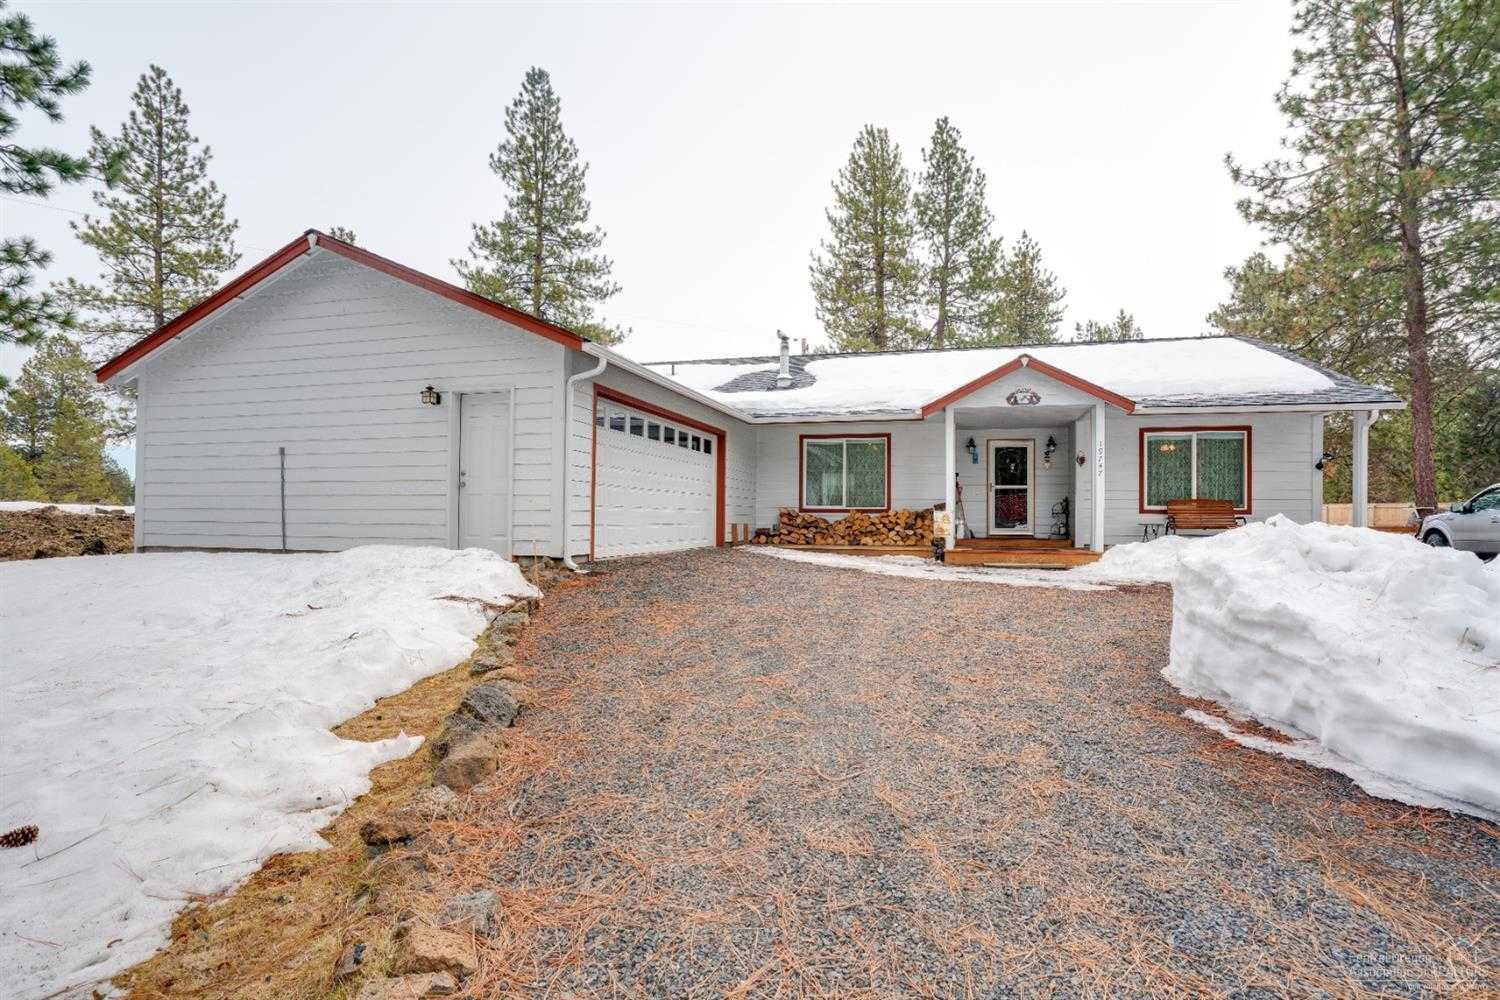 $519,000 - 3Br/2Ba -  for Sale in Bend